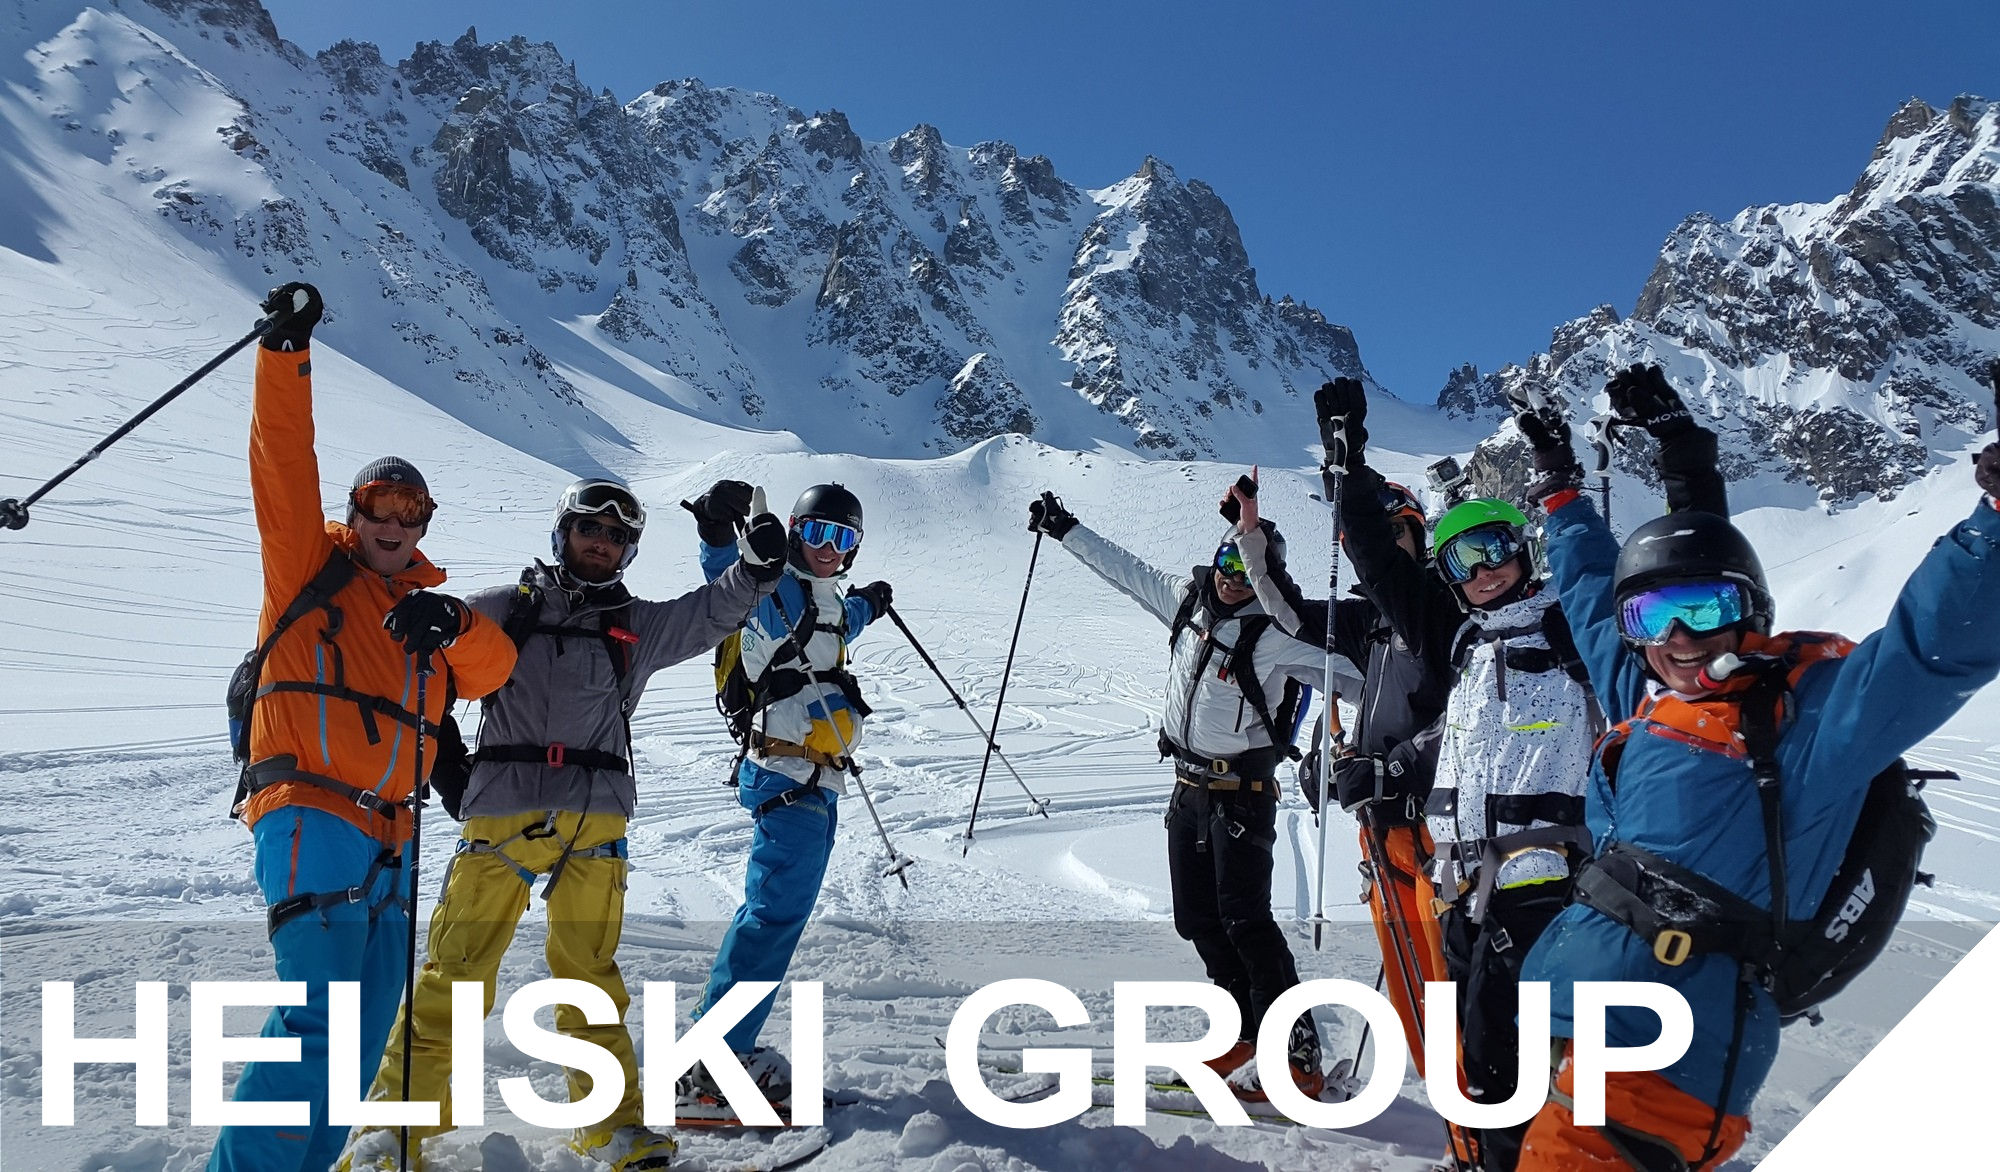 HELISKI GROUP